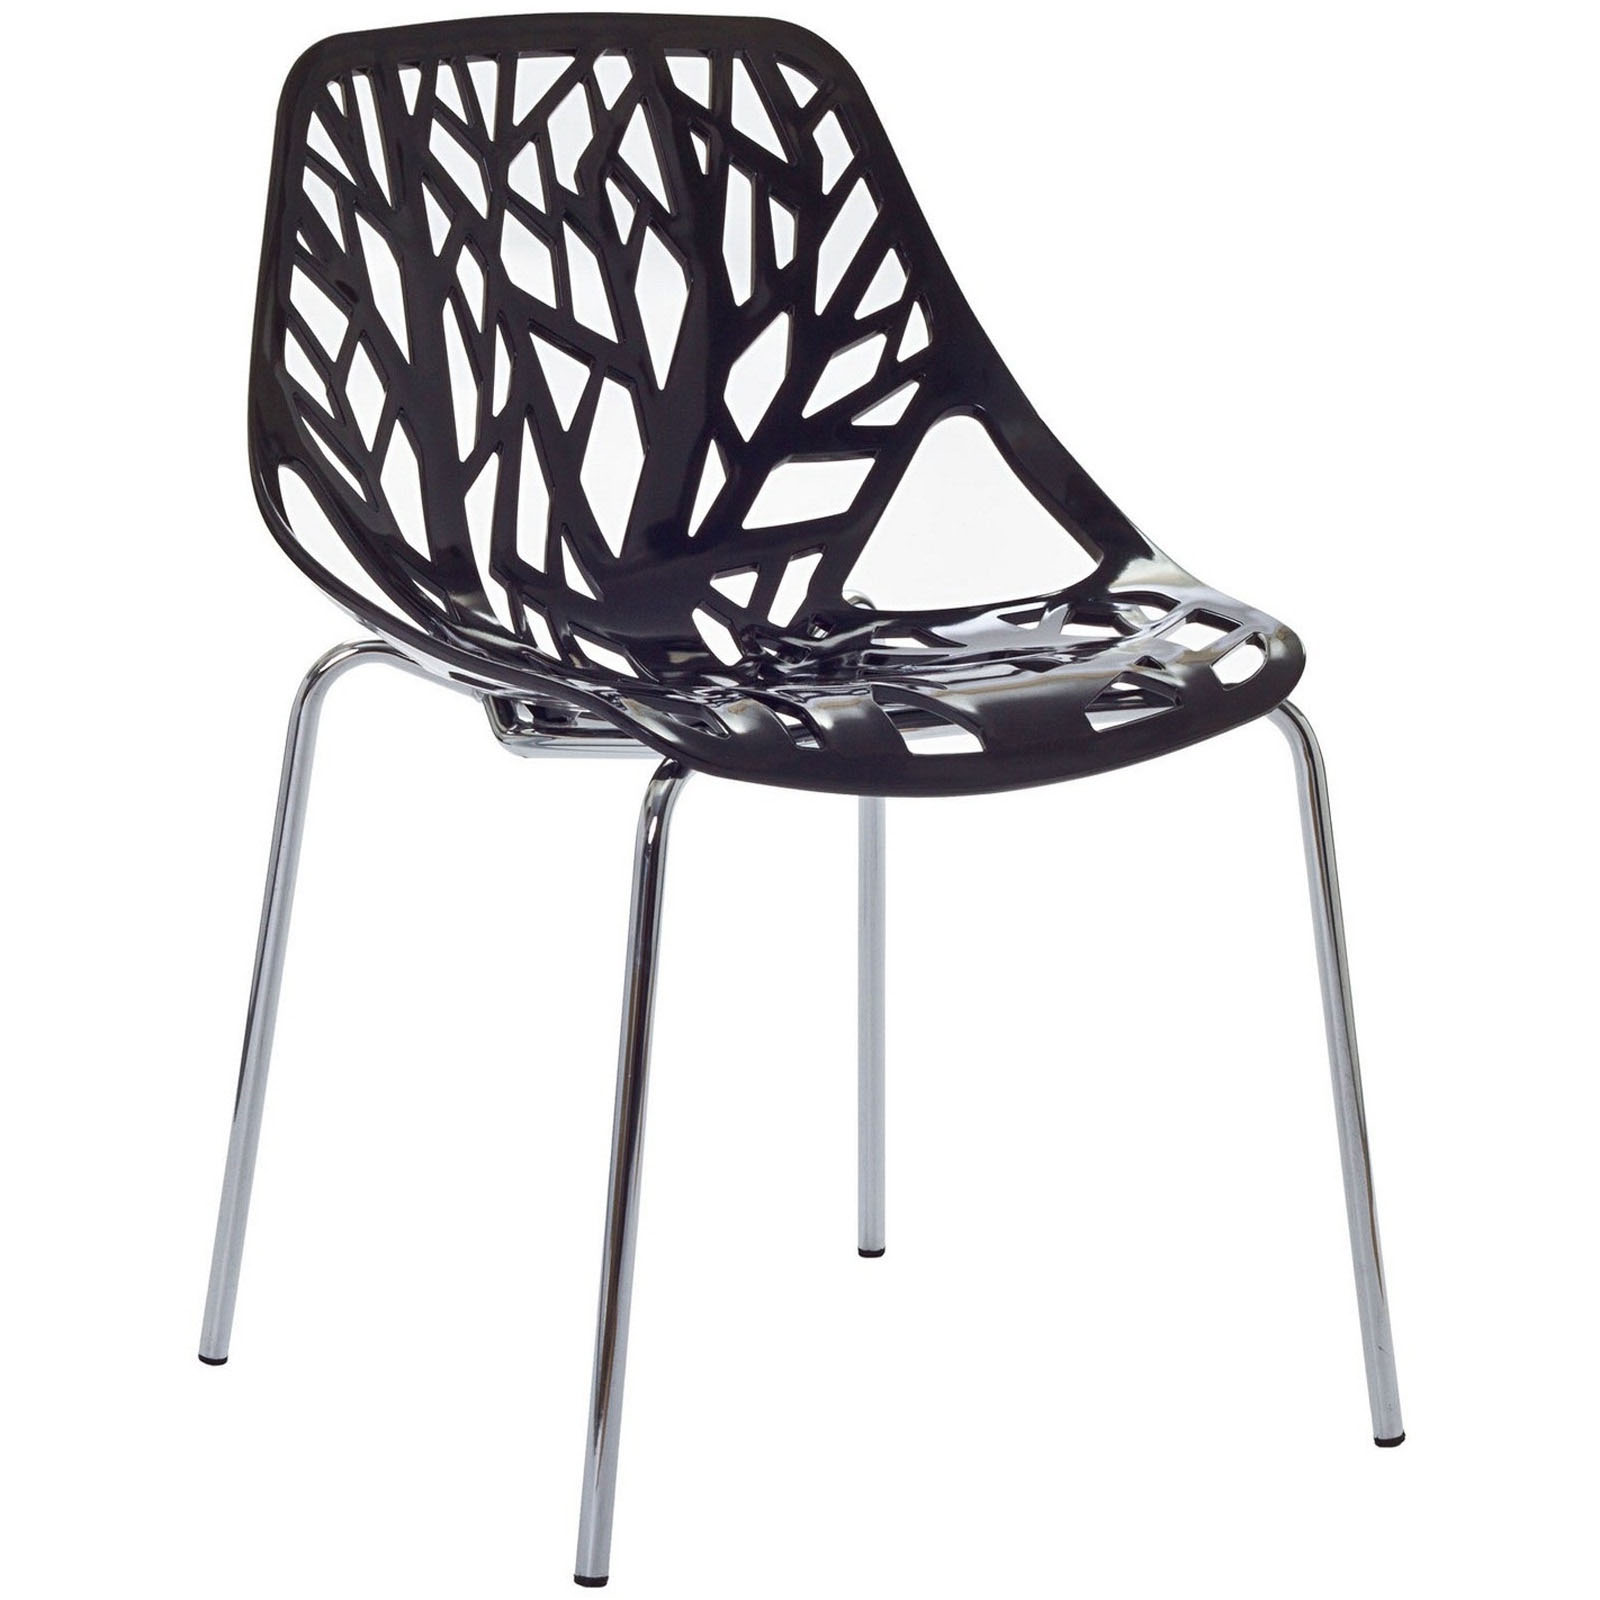 Modern Contemporary Kitchen Dining Side Chair Black (Outdoor and Indoor)